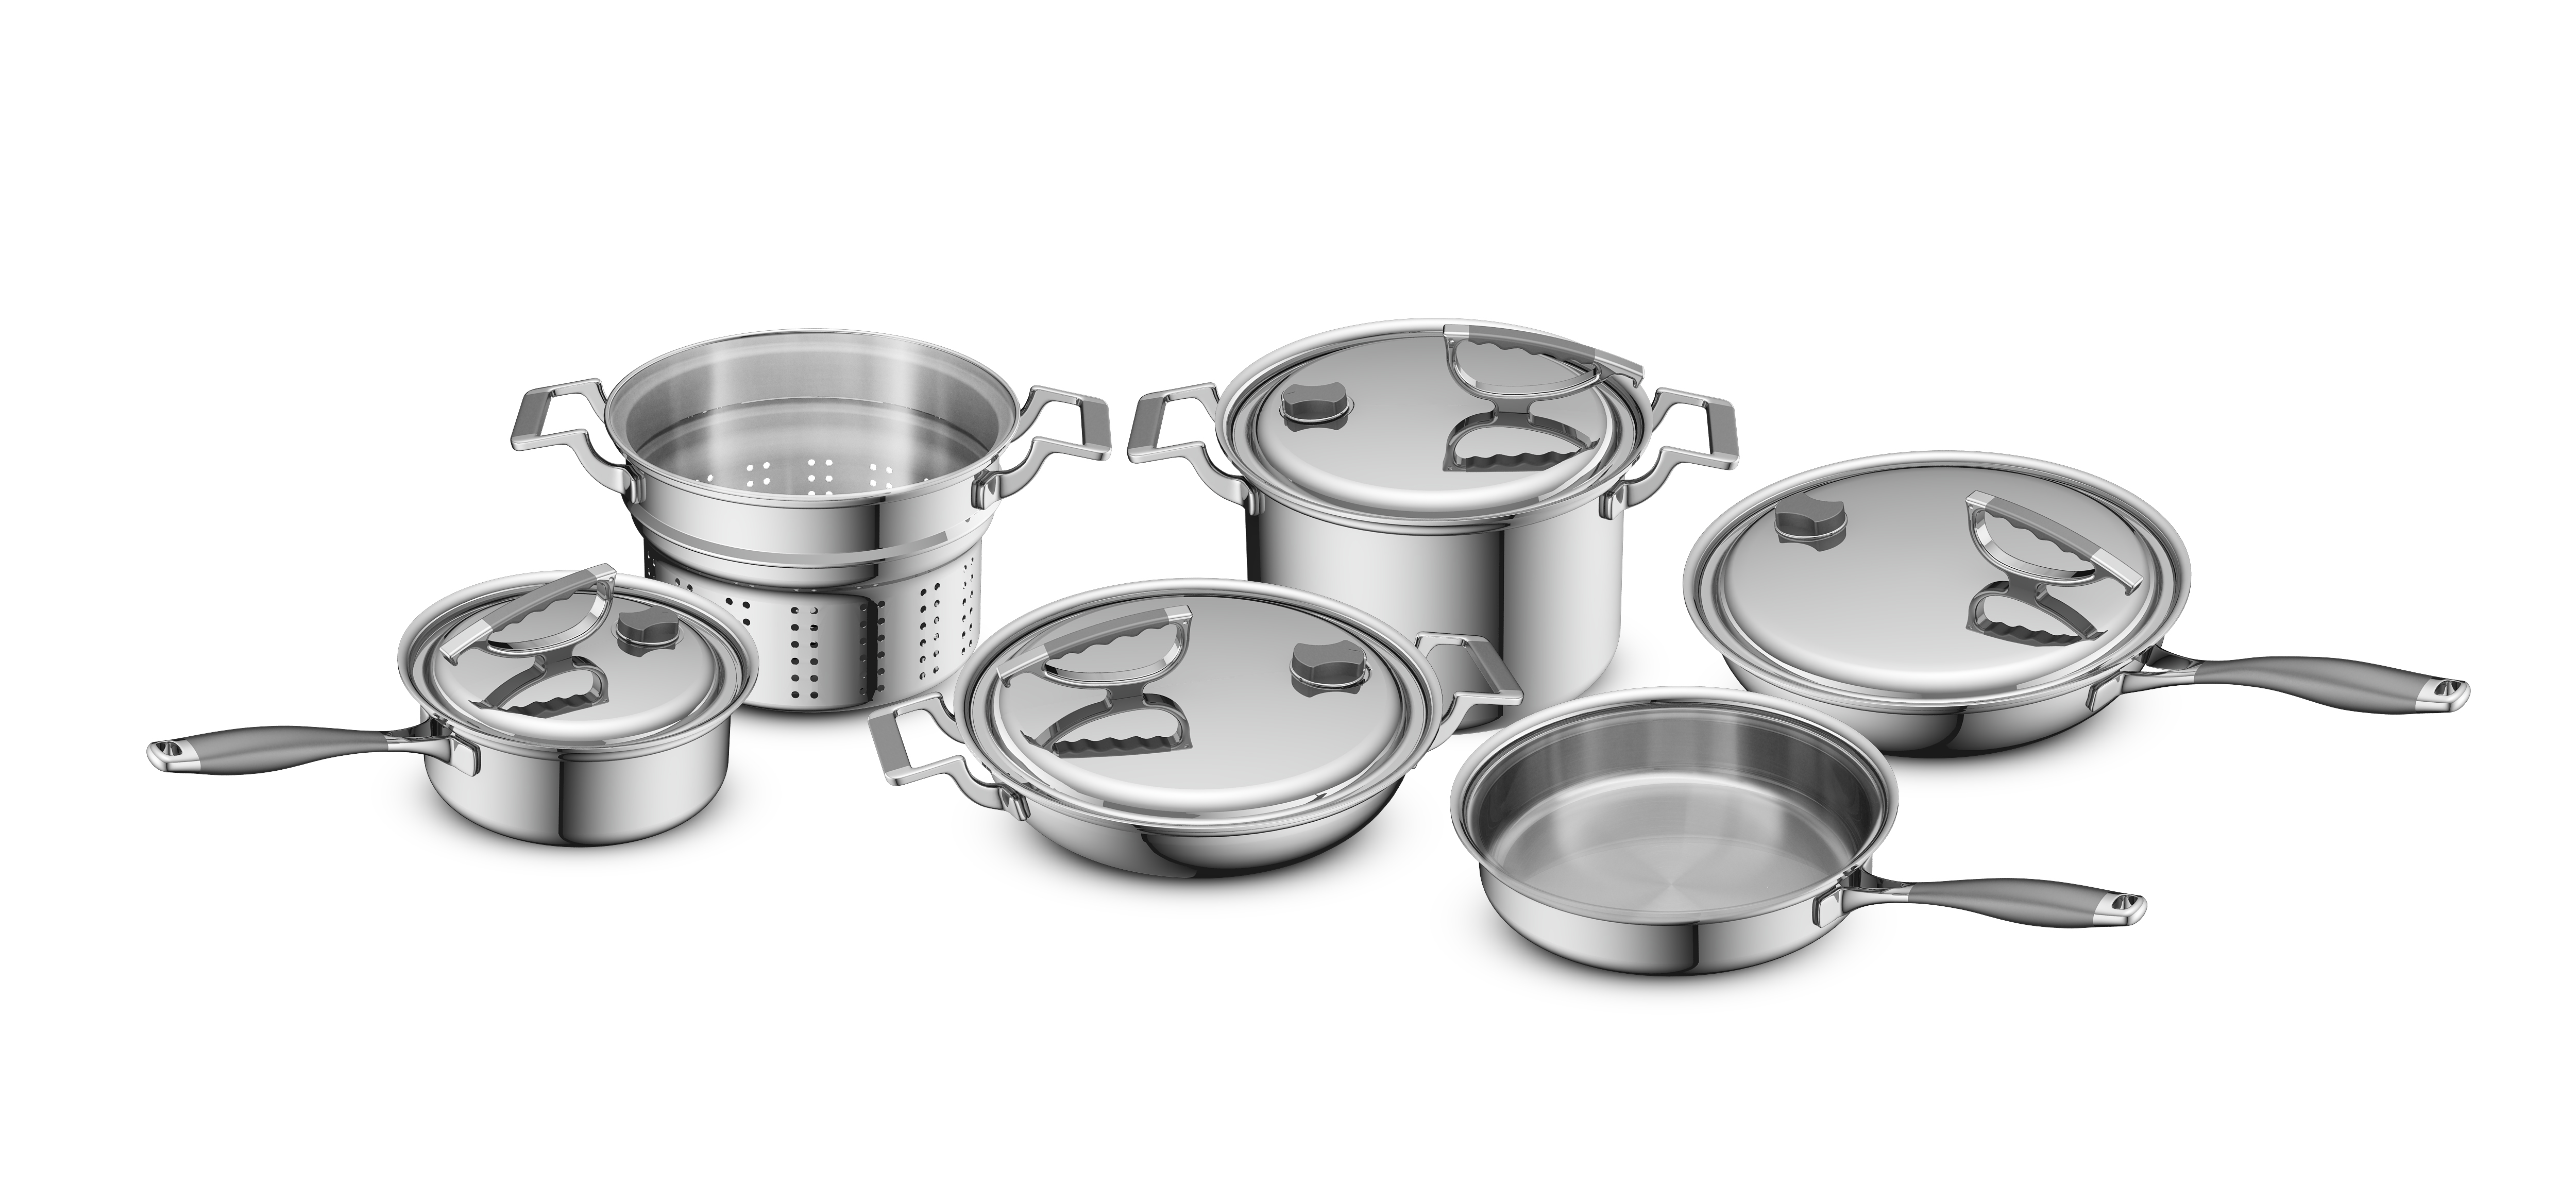 CookCraft CC-10PC-3006 Tri-Ply Stainless Steel Set - 10 Piece